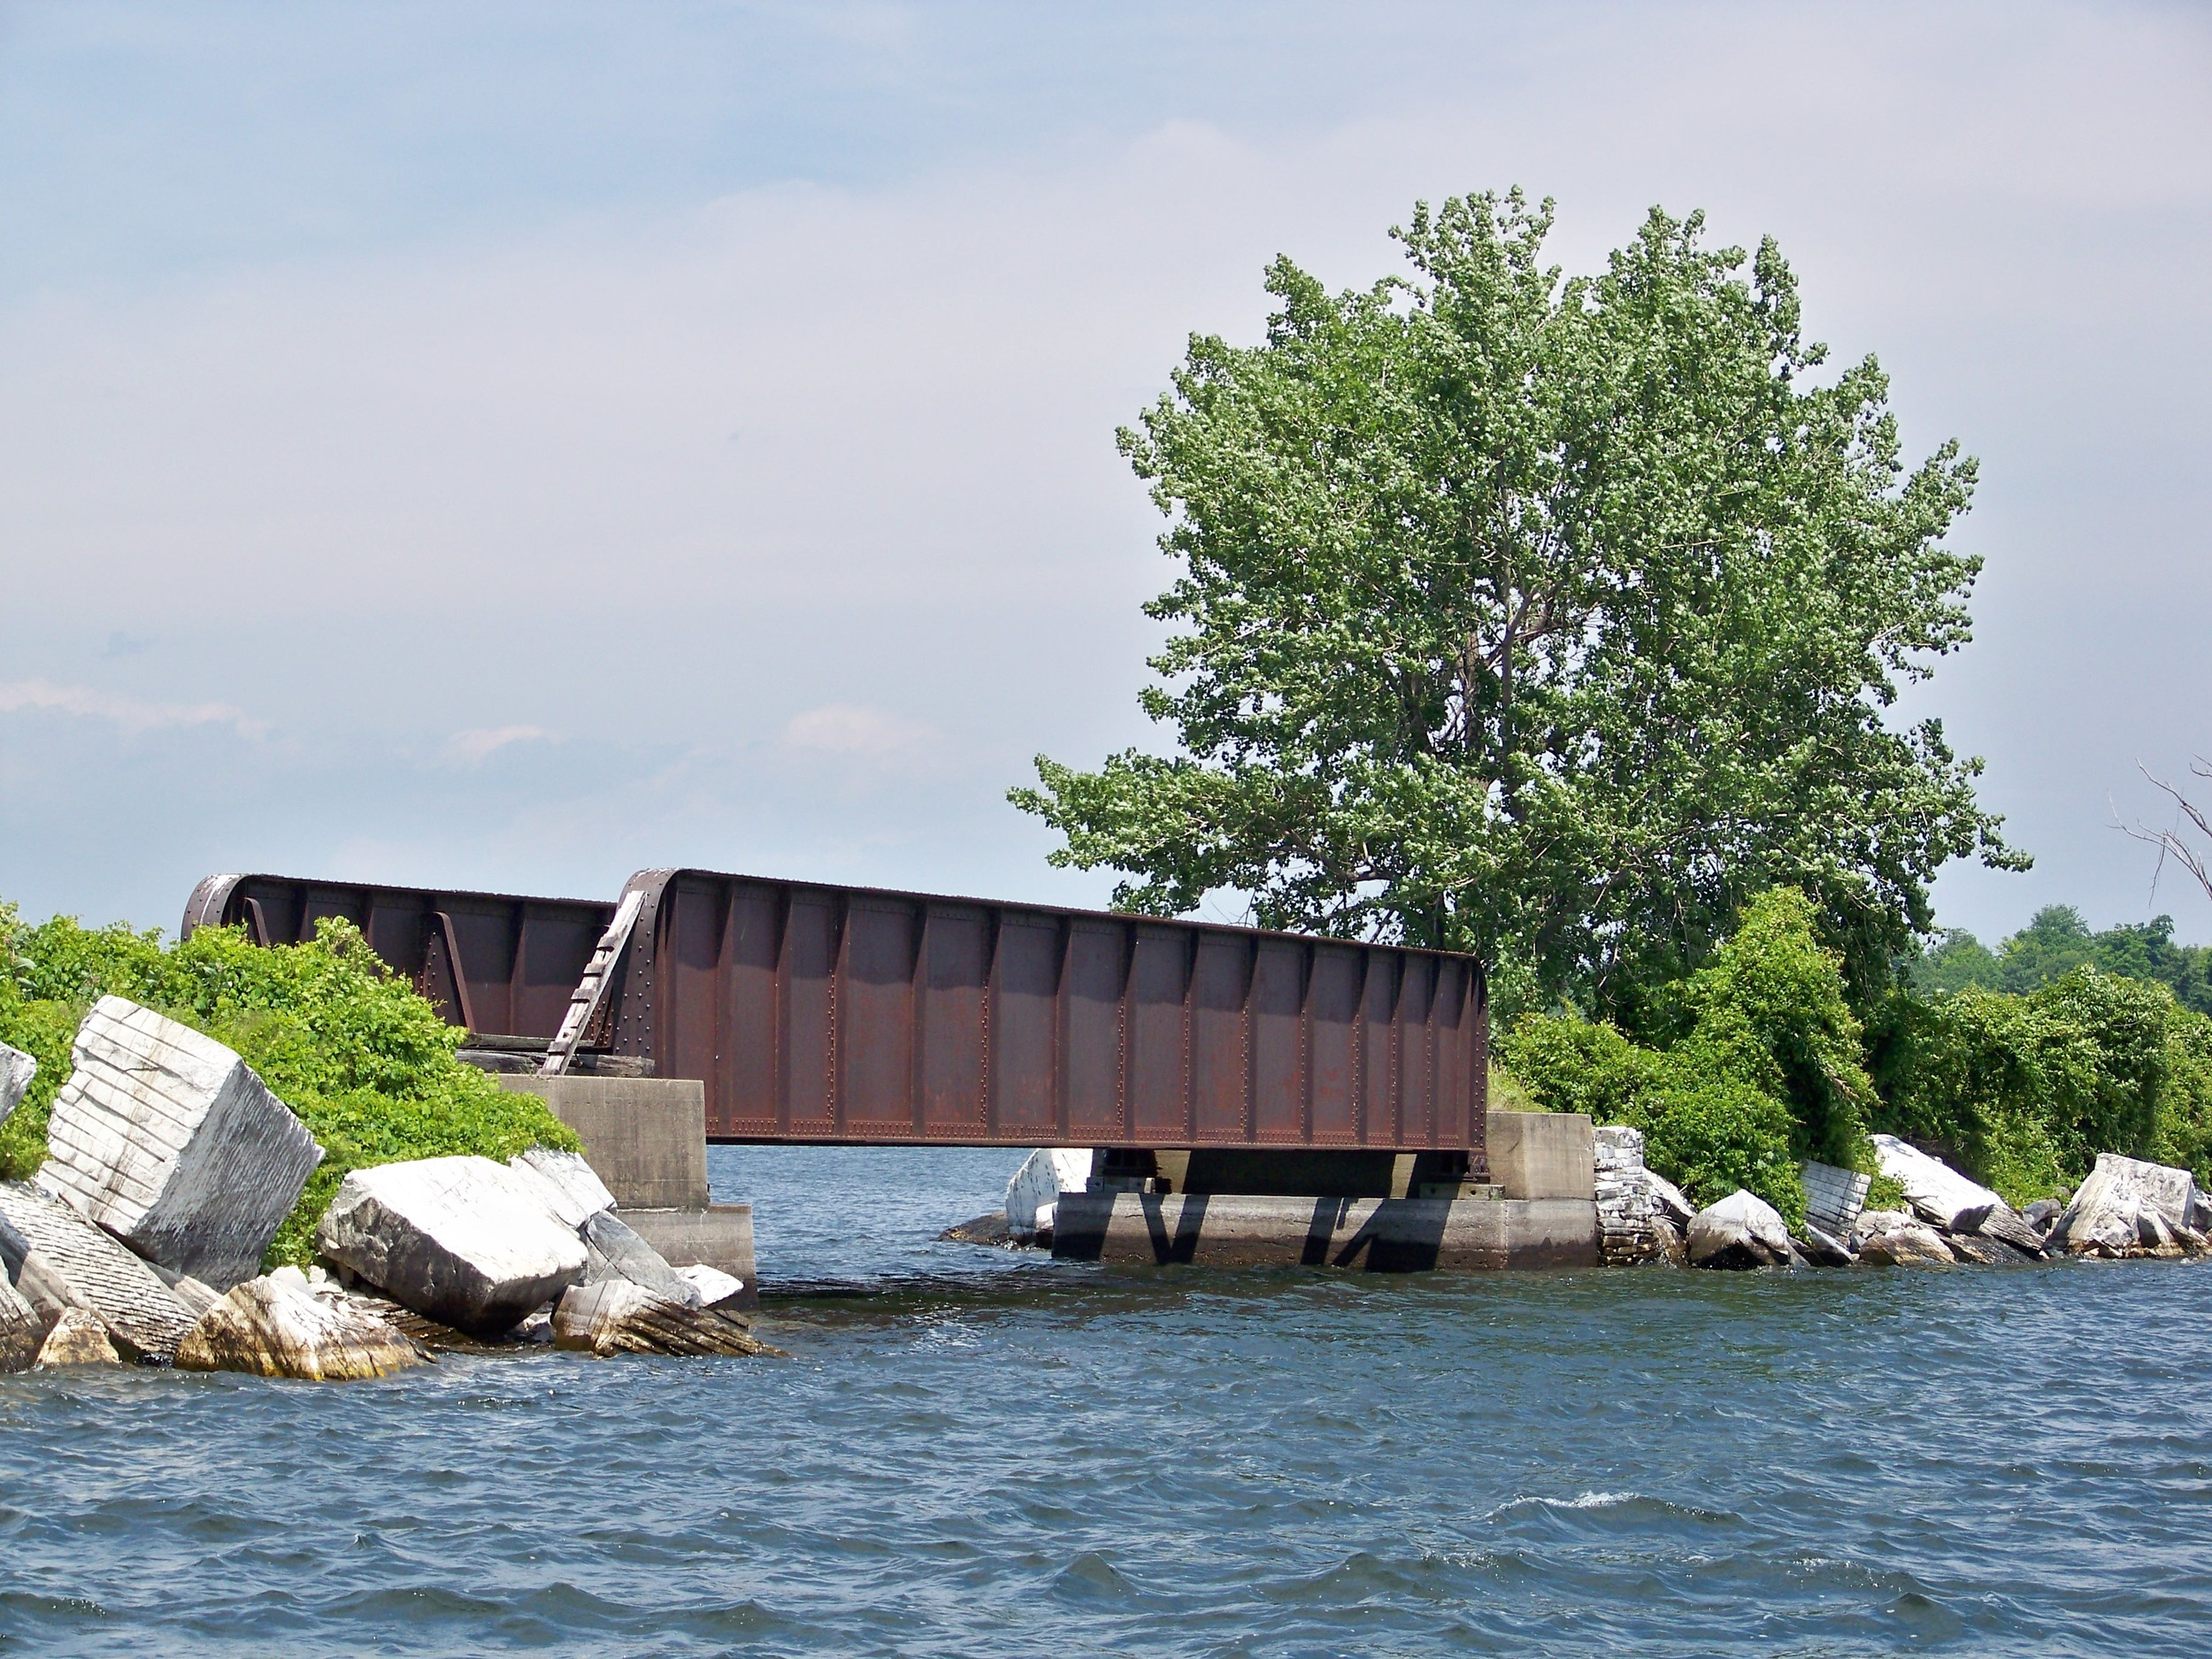 Several locations feature openings in jetties that connect islands to each other.